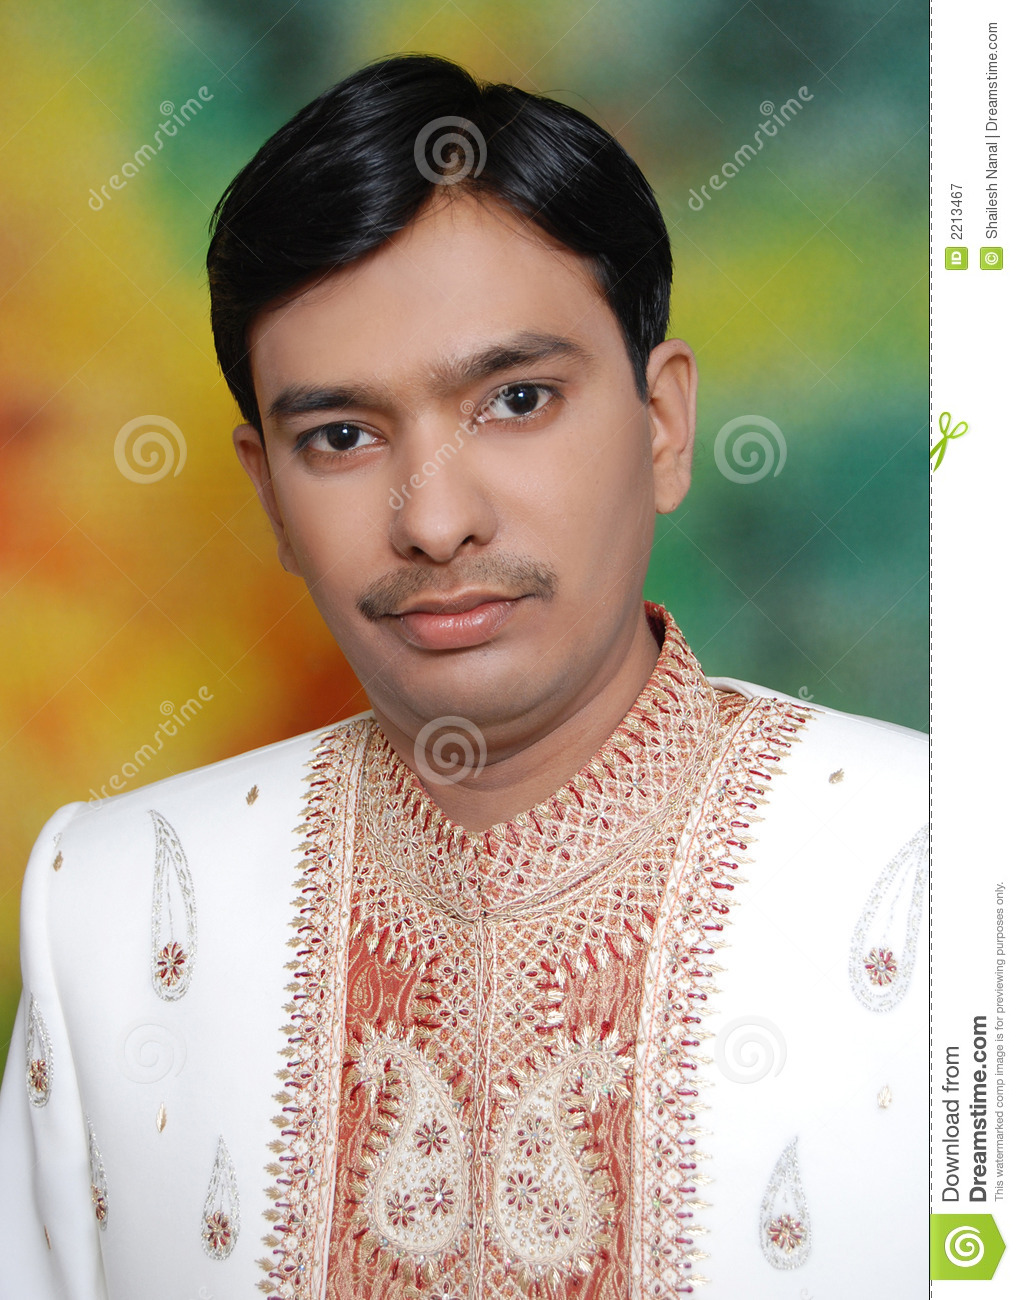 nice indian boy stock images - 312 photos